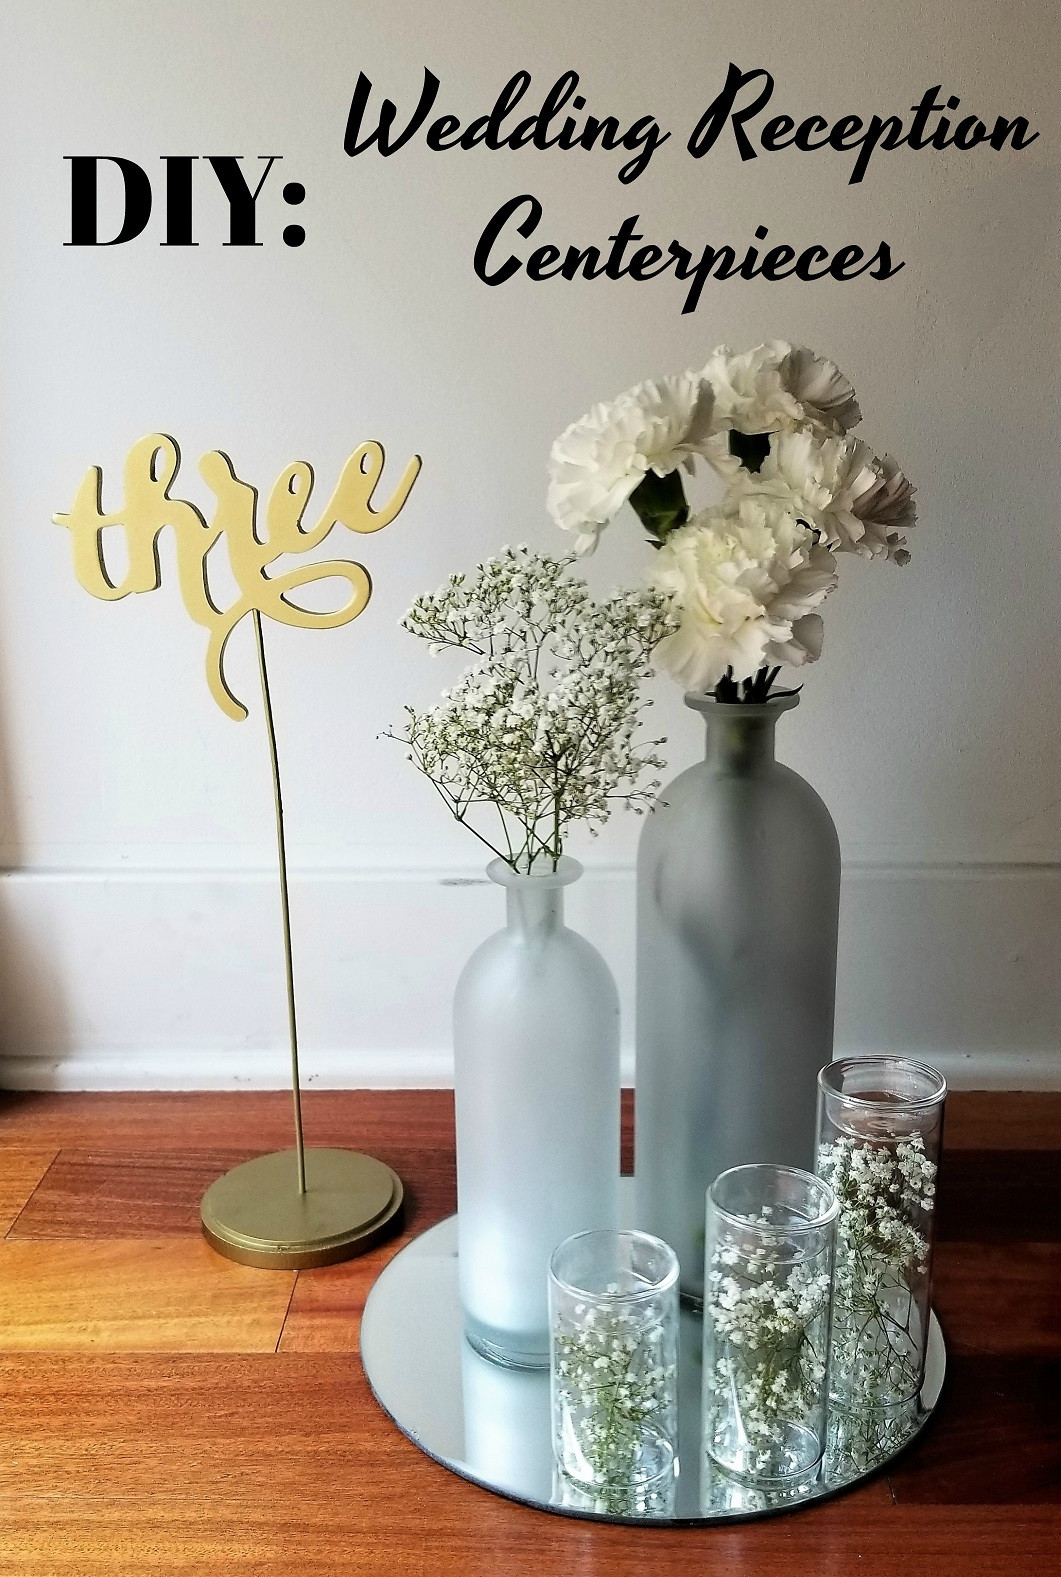 Best ideas about DIY Centerpieces For Wedding Receptions . Save or Pin DIY Inexpensive Wedding Reception Centerpieces La Vie en Now.